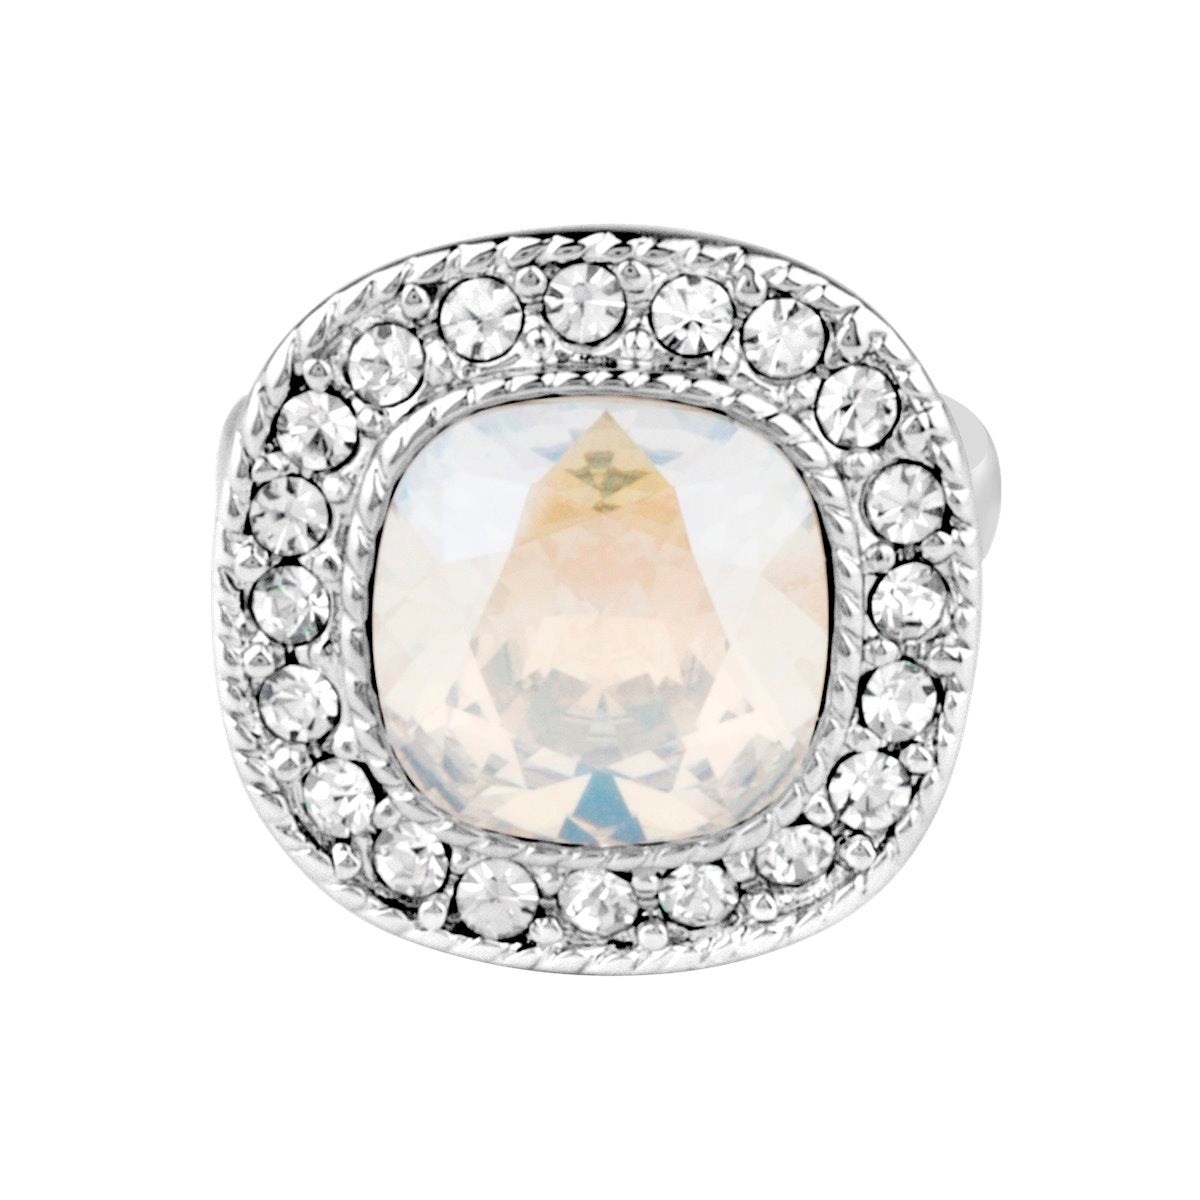 ARNOLFINI RING MOONLIGHT RING - FOREVER - ESSENTIALS - MOONLIGHT FOREVER